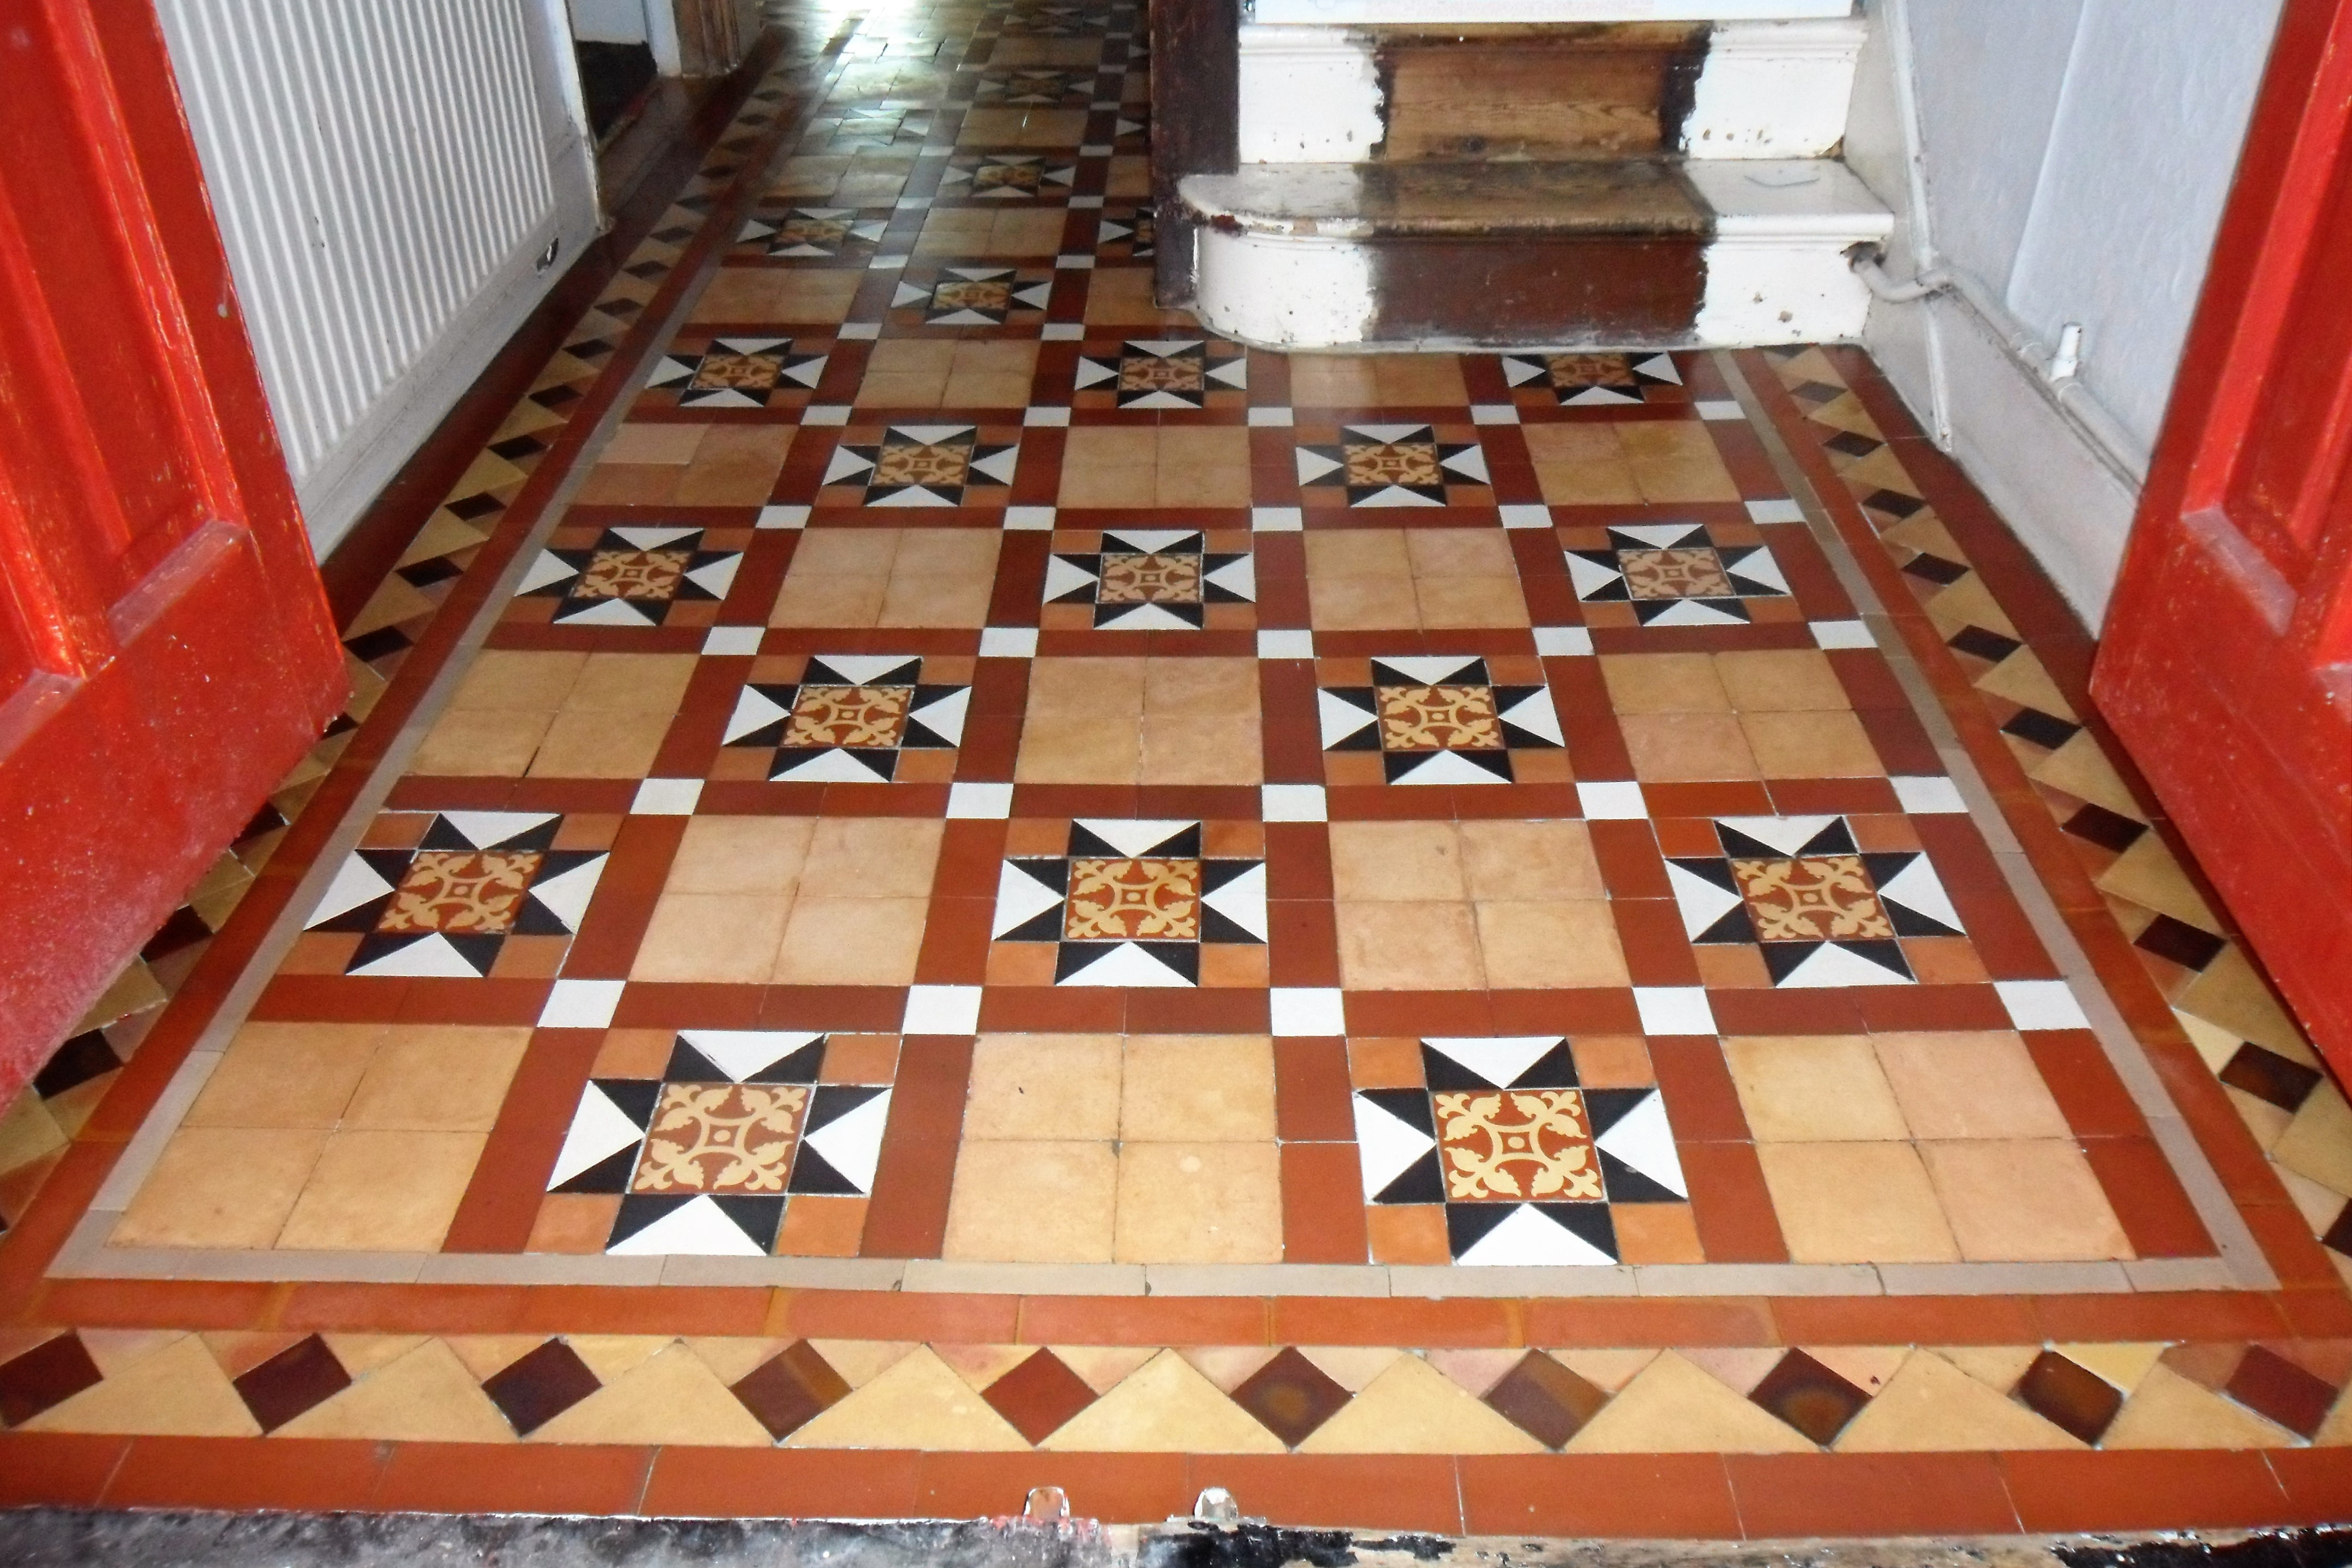 Tile Cleaning Amp Restorers North London Specialist Tiling